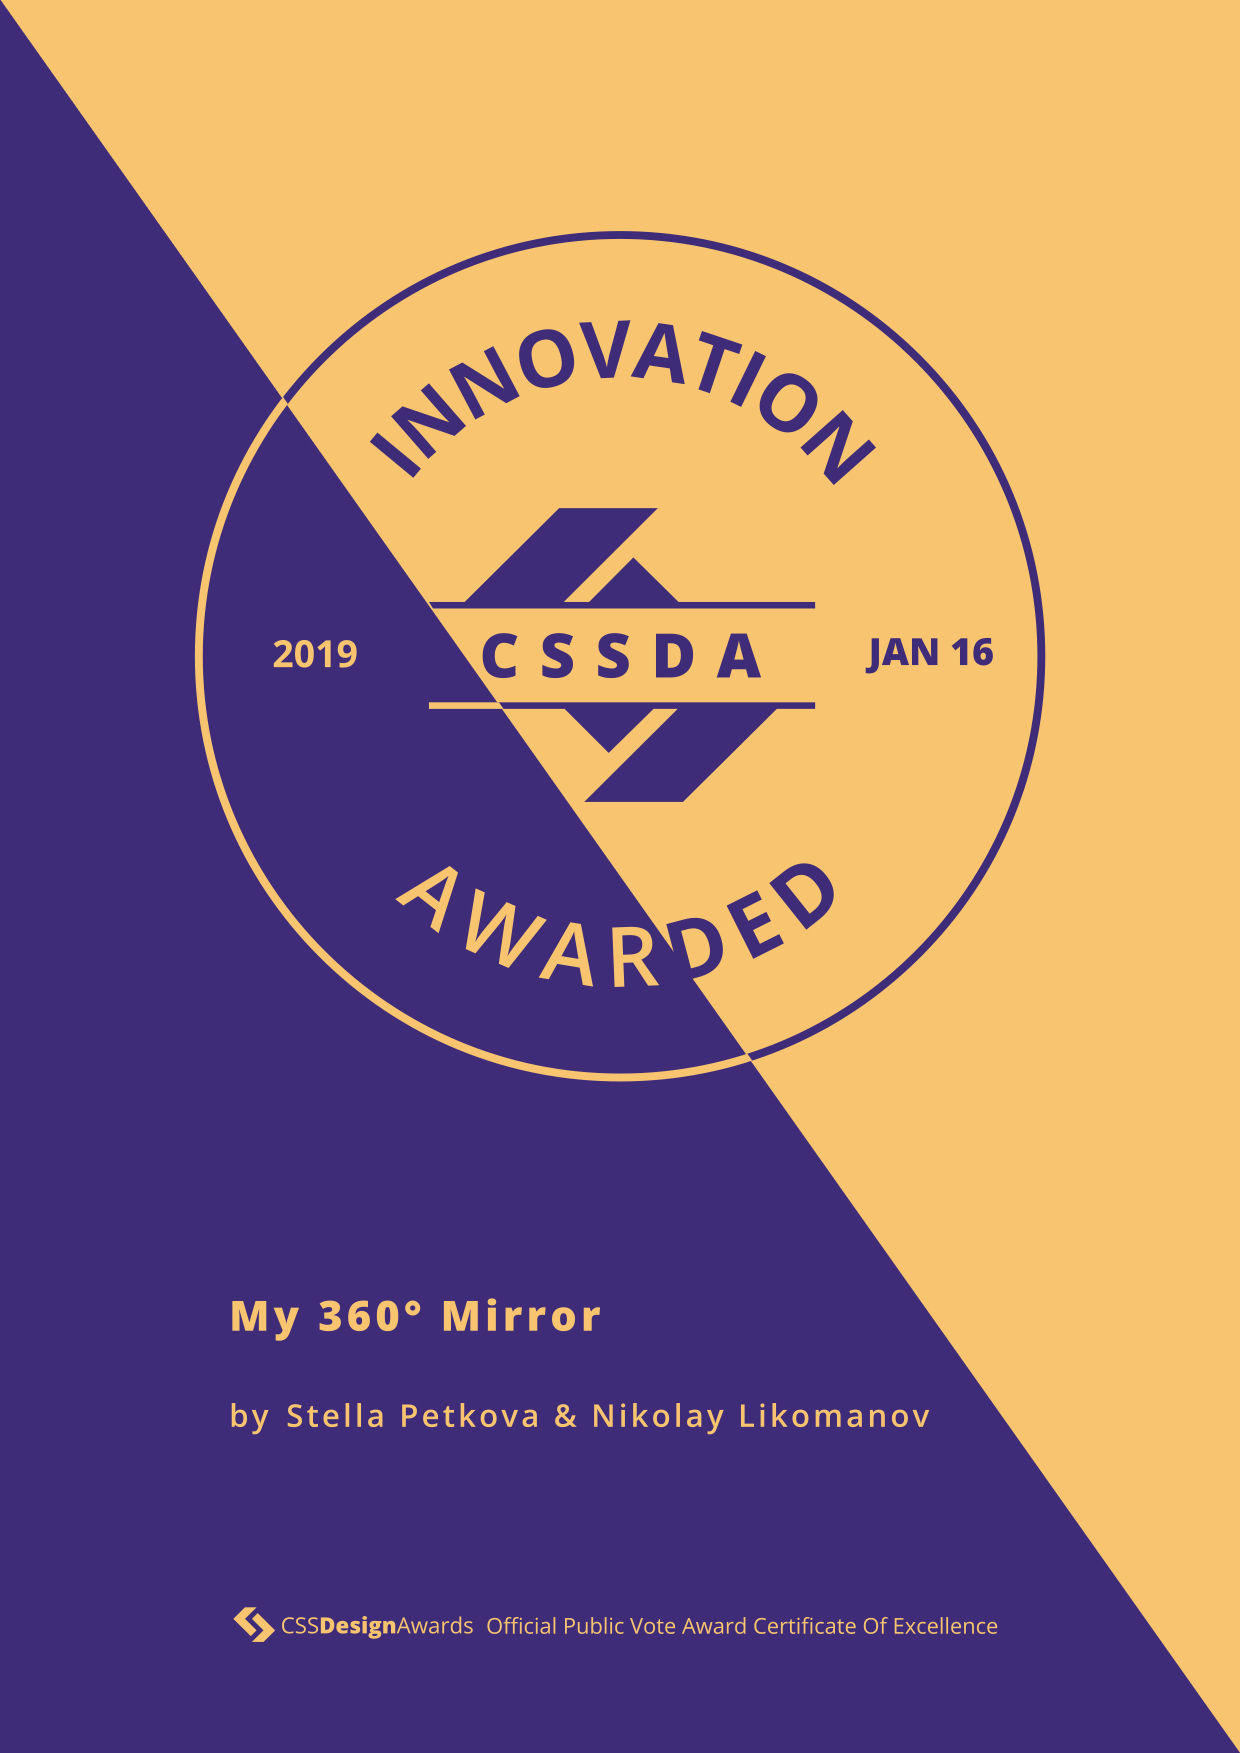 CSS Design Awards Innovation Certificate - My 360 Mirror